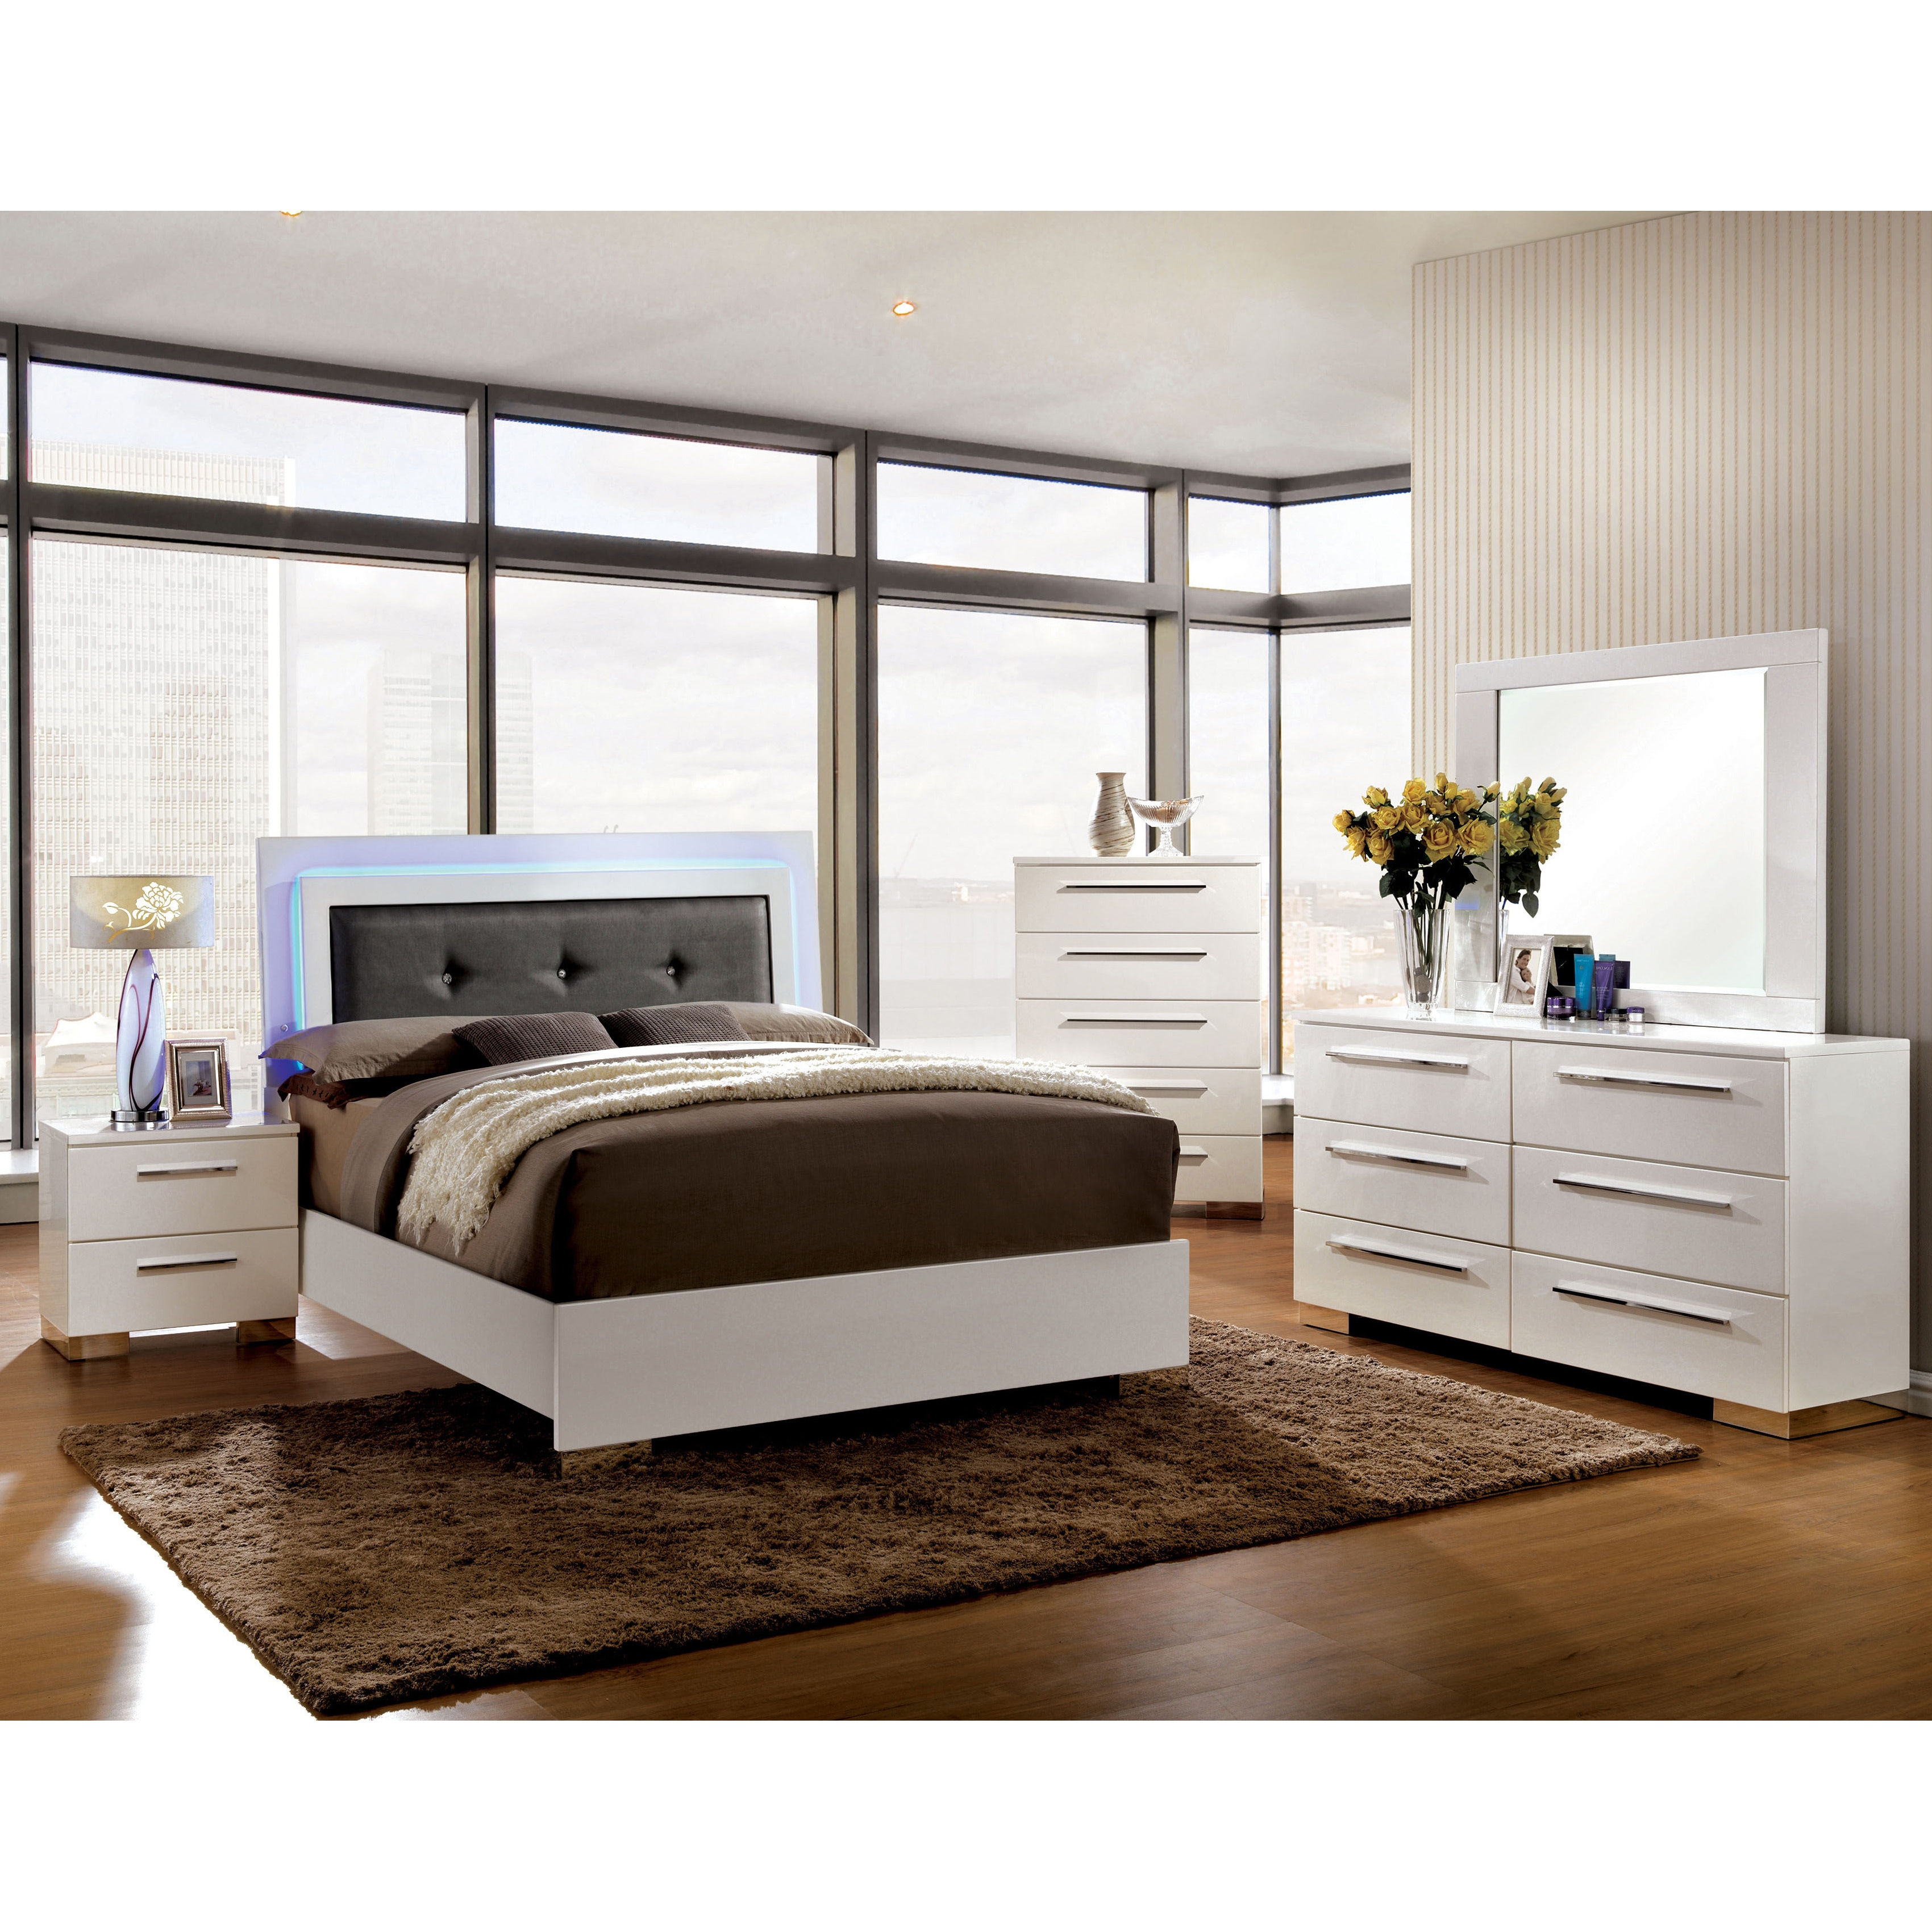 Furniture Of America Rema Contemporary White Solid Wood 5 Drawer Chest On Sale Overstock 11441882